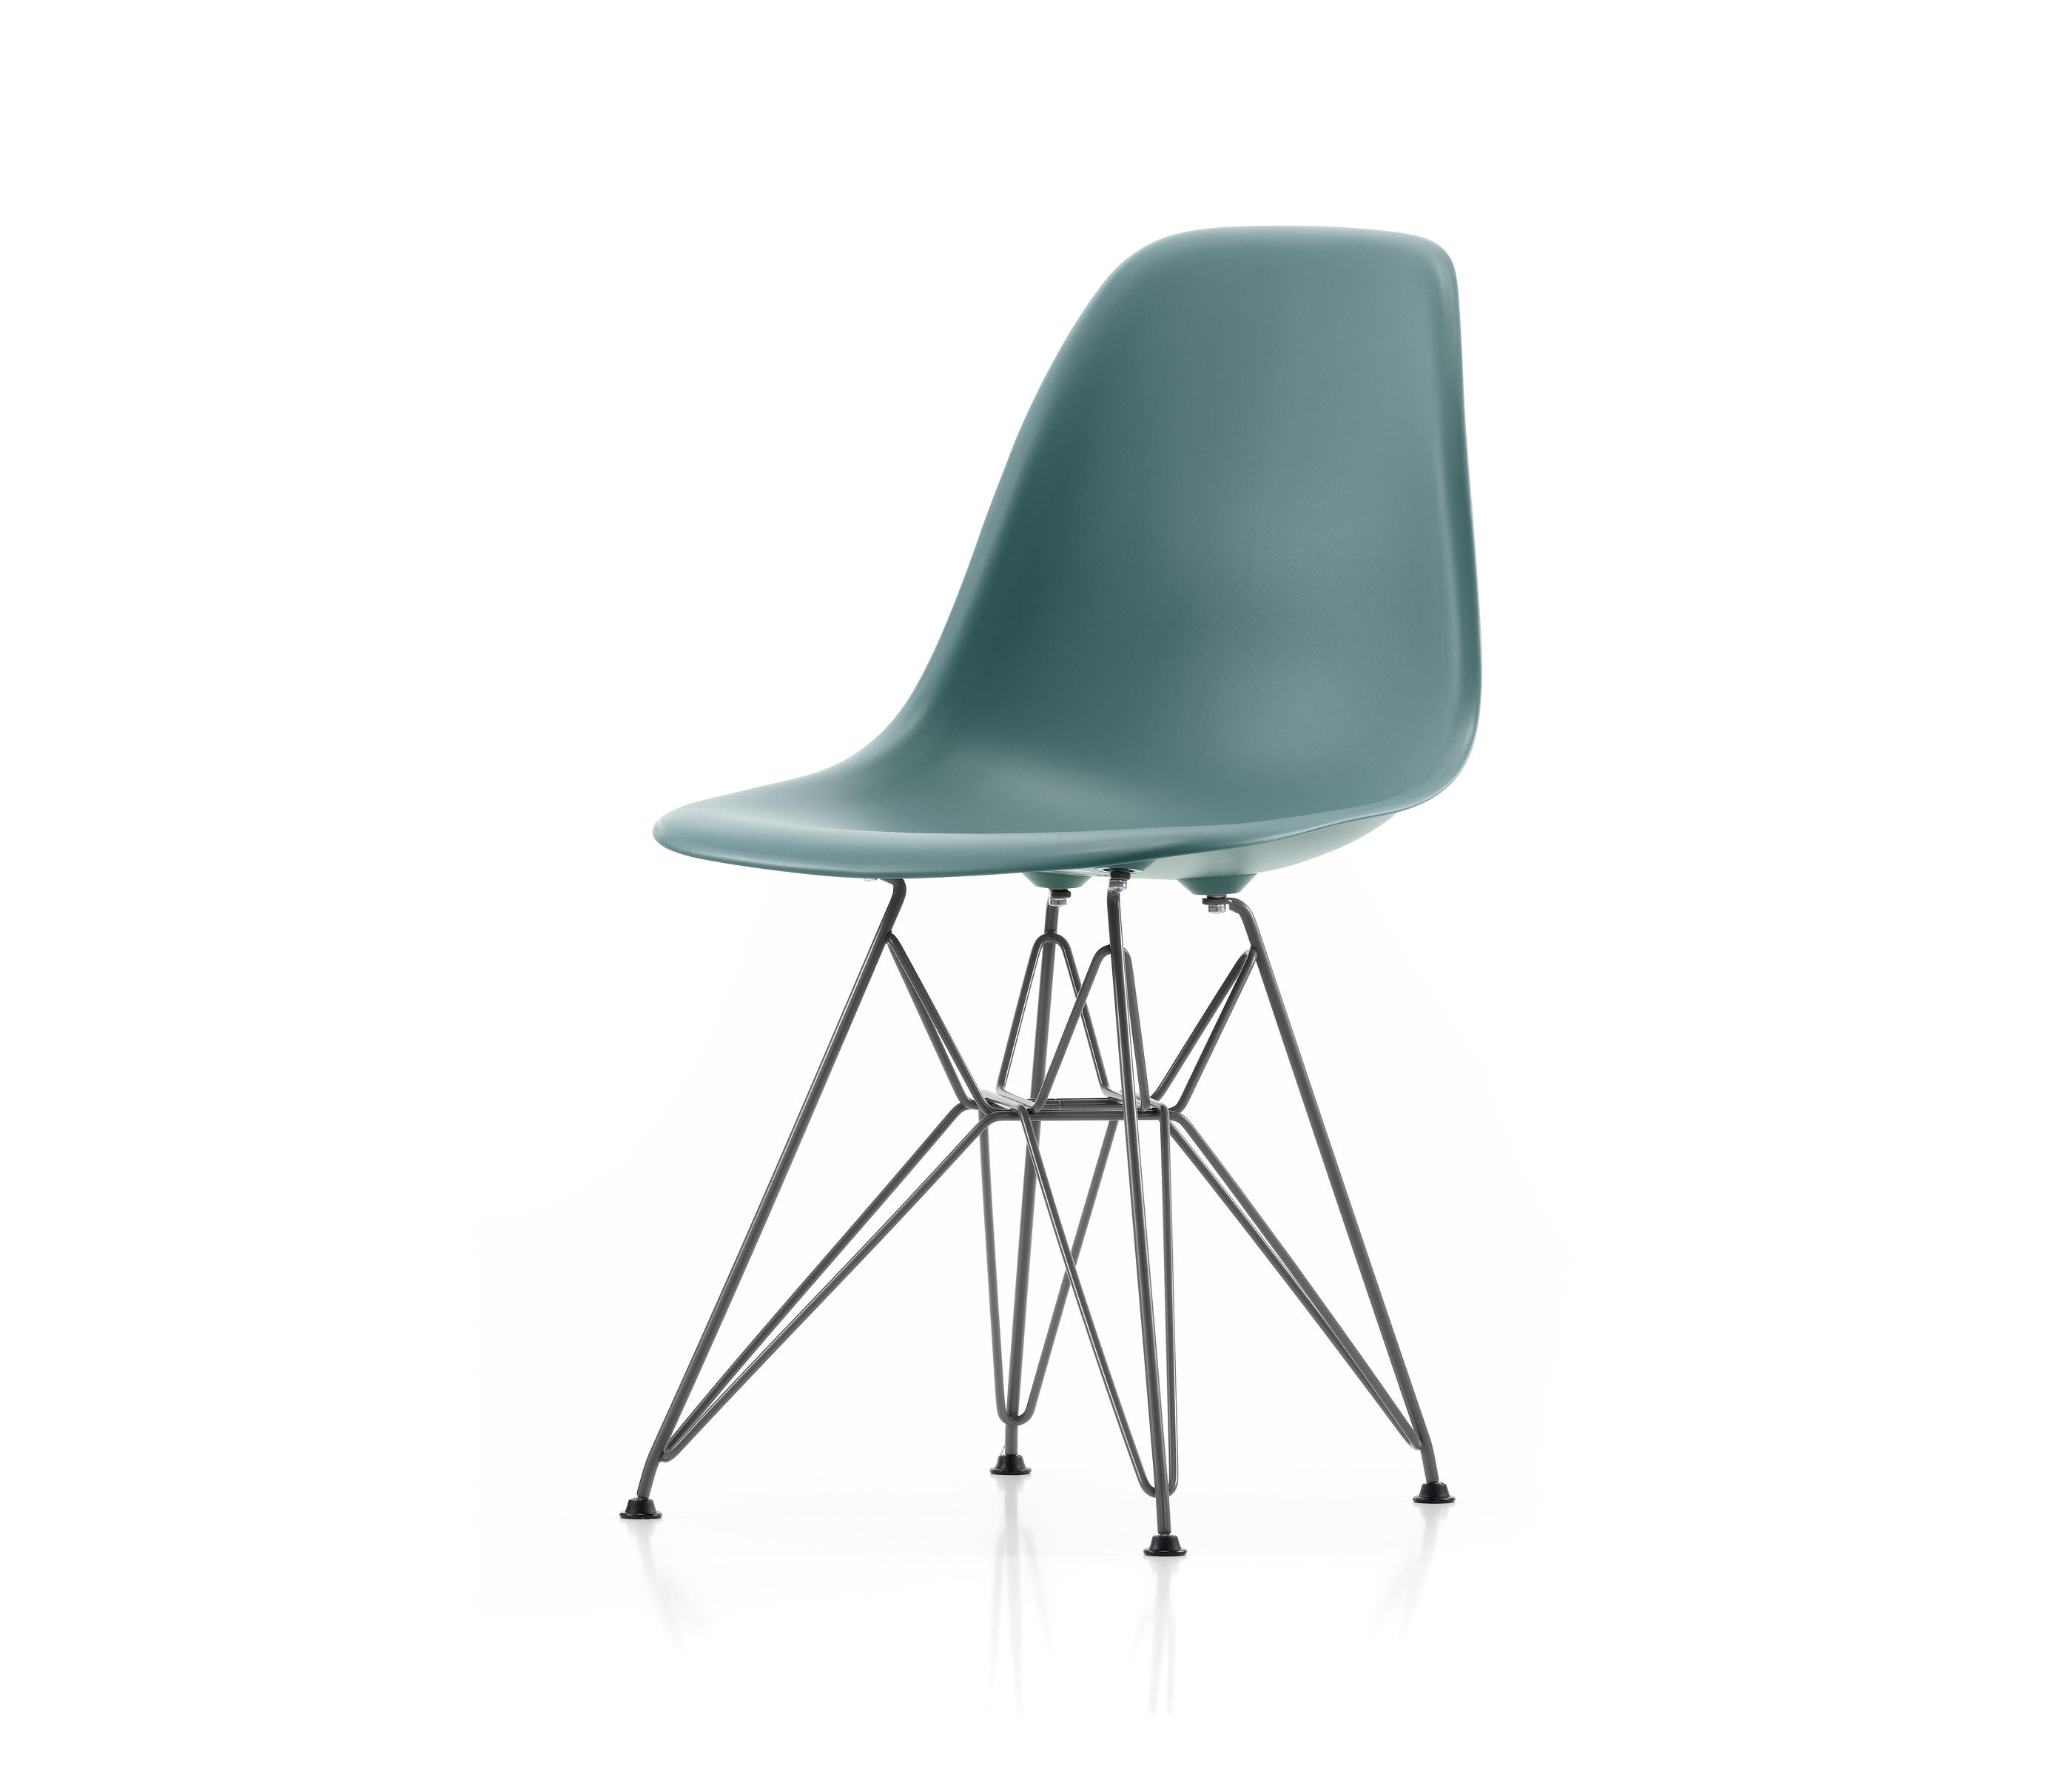 Eames Plastic Side Chair Dsr By Vitra Chairs